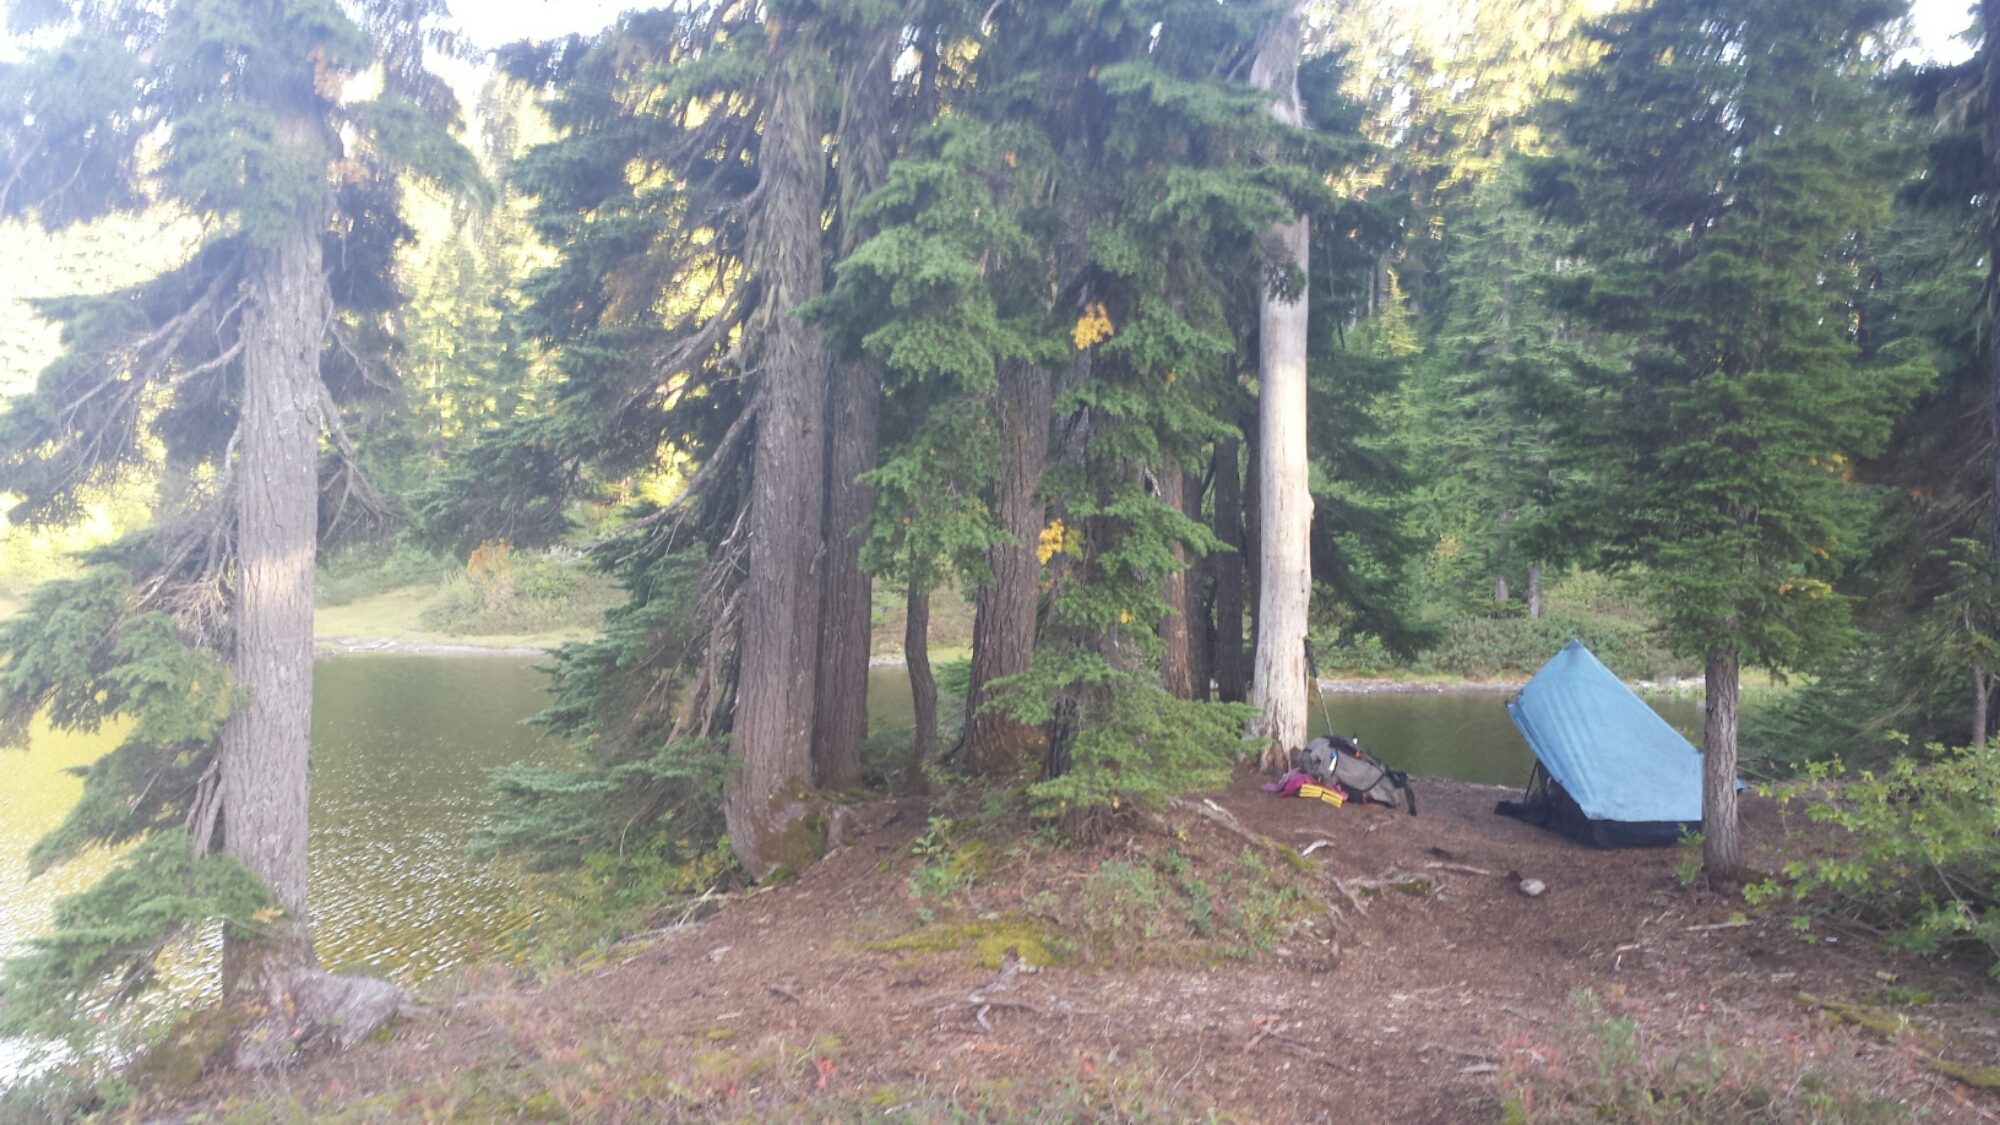 Camping at Mig Lake